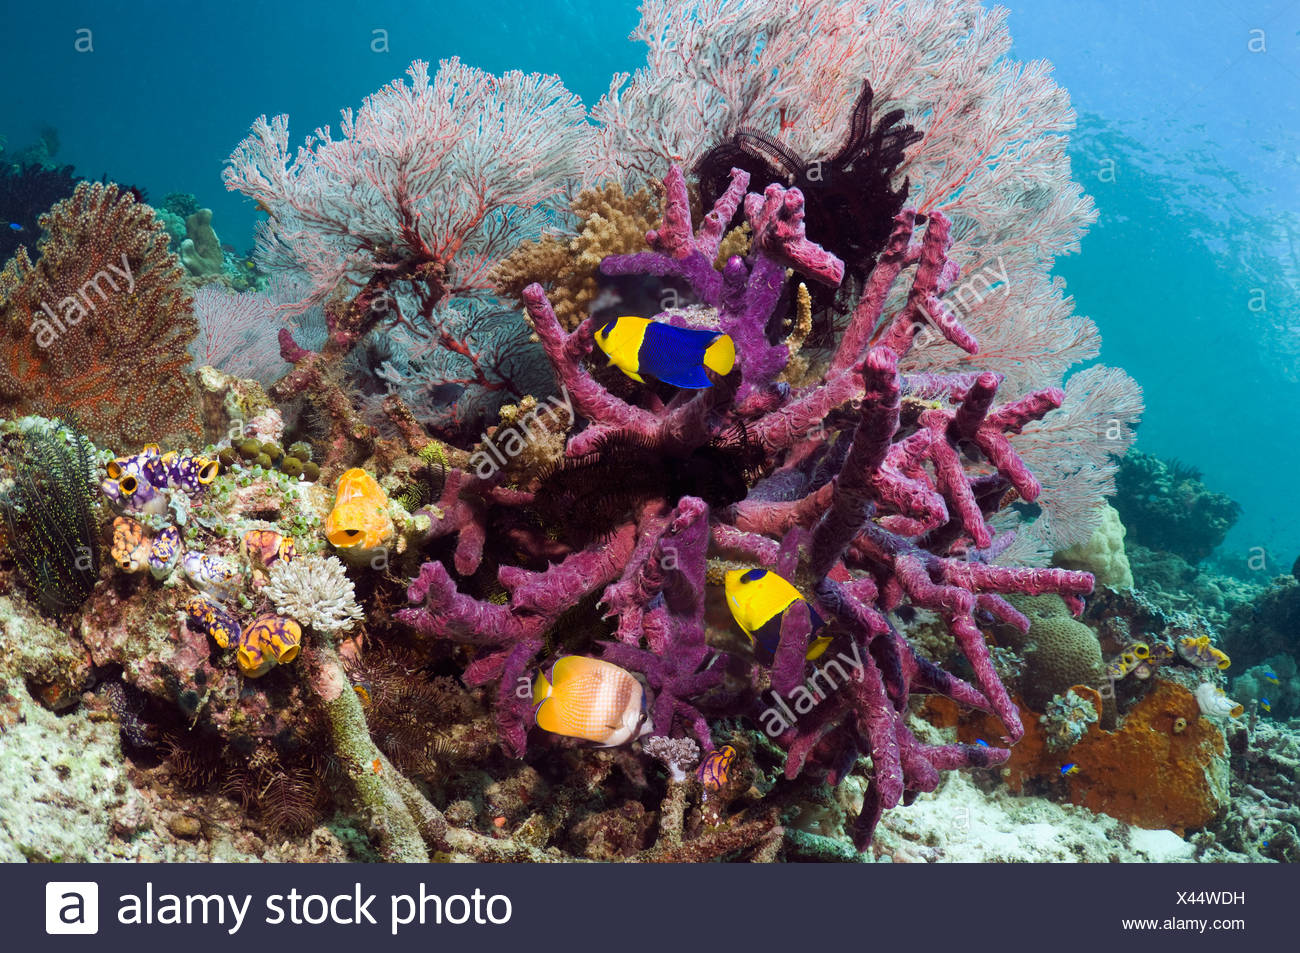 Bicolor angelfish, Klein's butterflyfish with gorgonian and purple encrusting sponge, Misool, West Papua, Indonesia Stock Photo